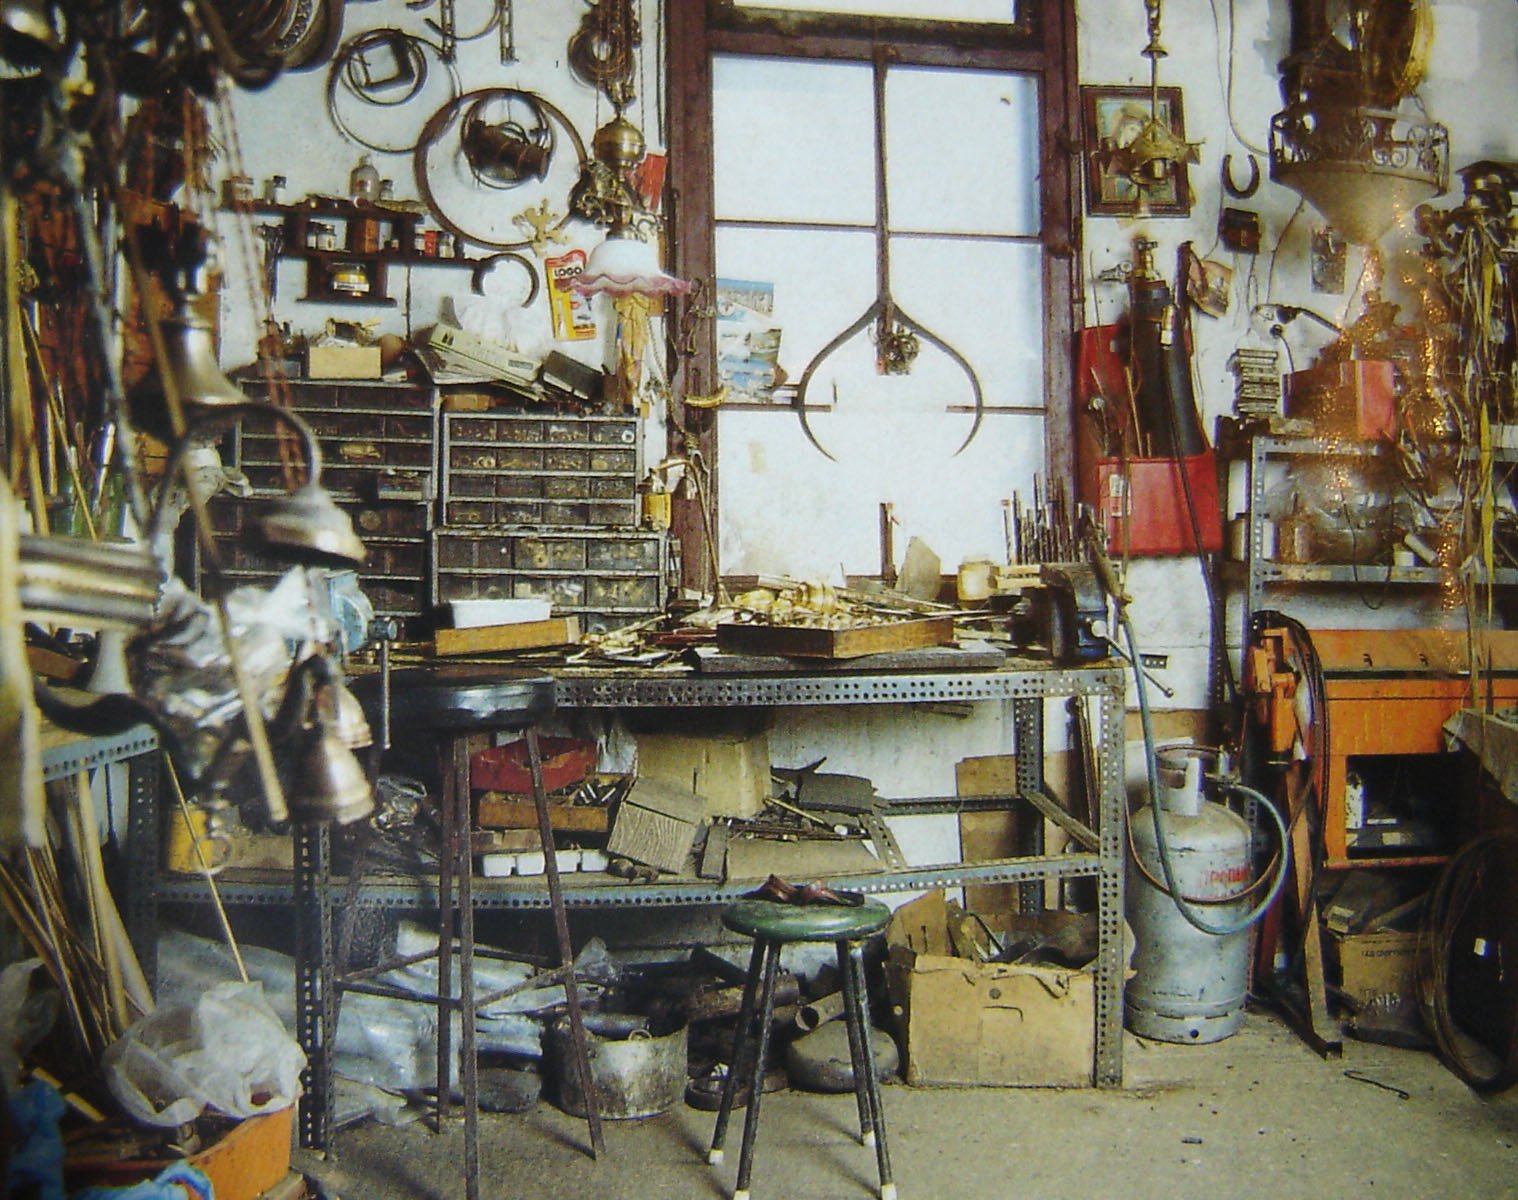 A place from the past: The workshop of Anestis.